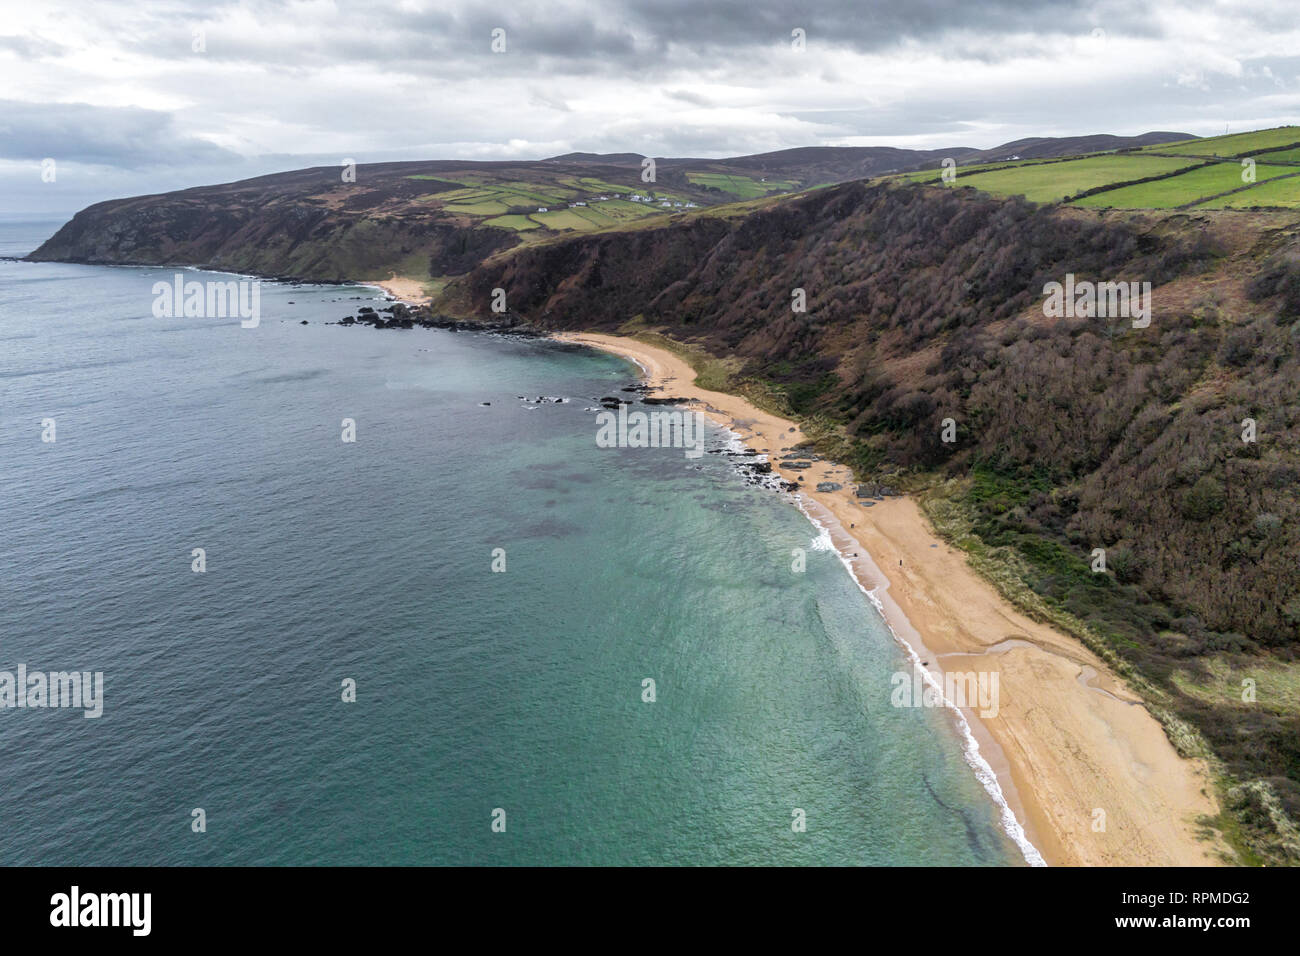 This is an aerial photograph of Kinnageo Beach on the Inishowen peninsula in Donegal Ireland.  It shows the crystal clear turquoise water of the Atlan - Stock Image